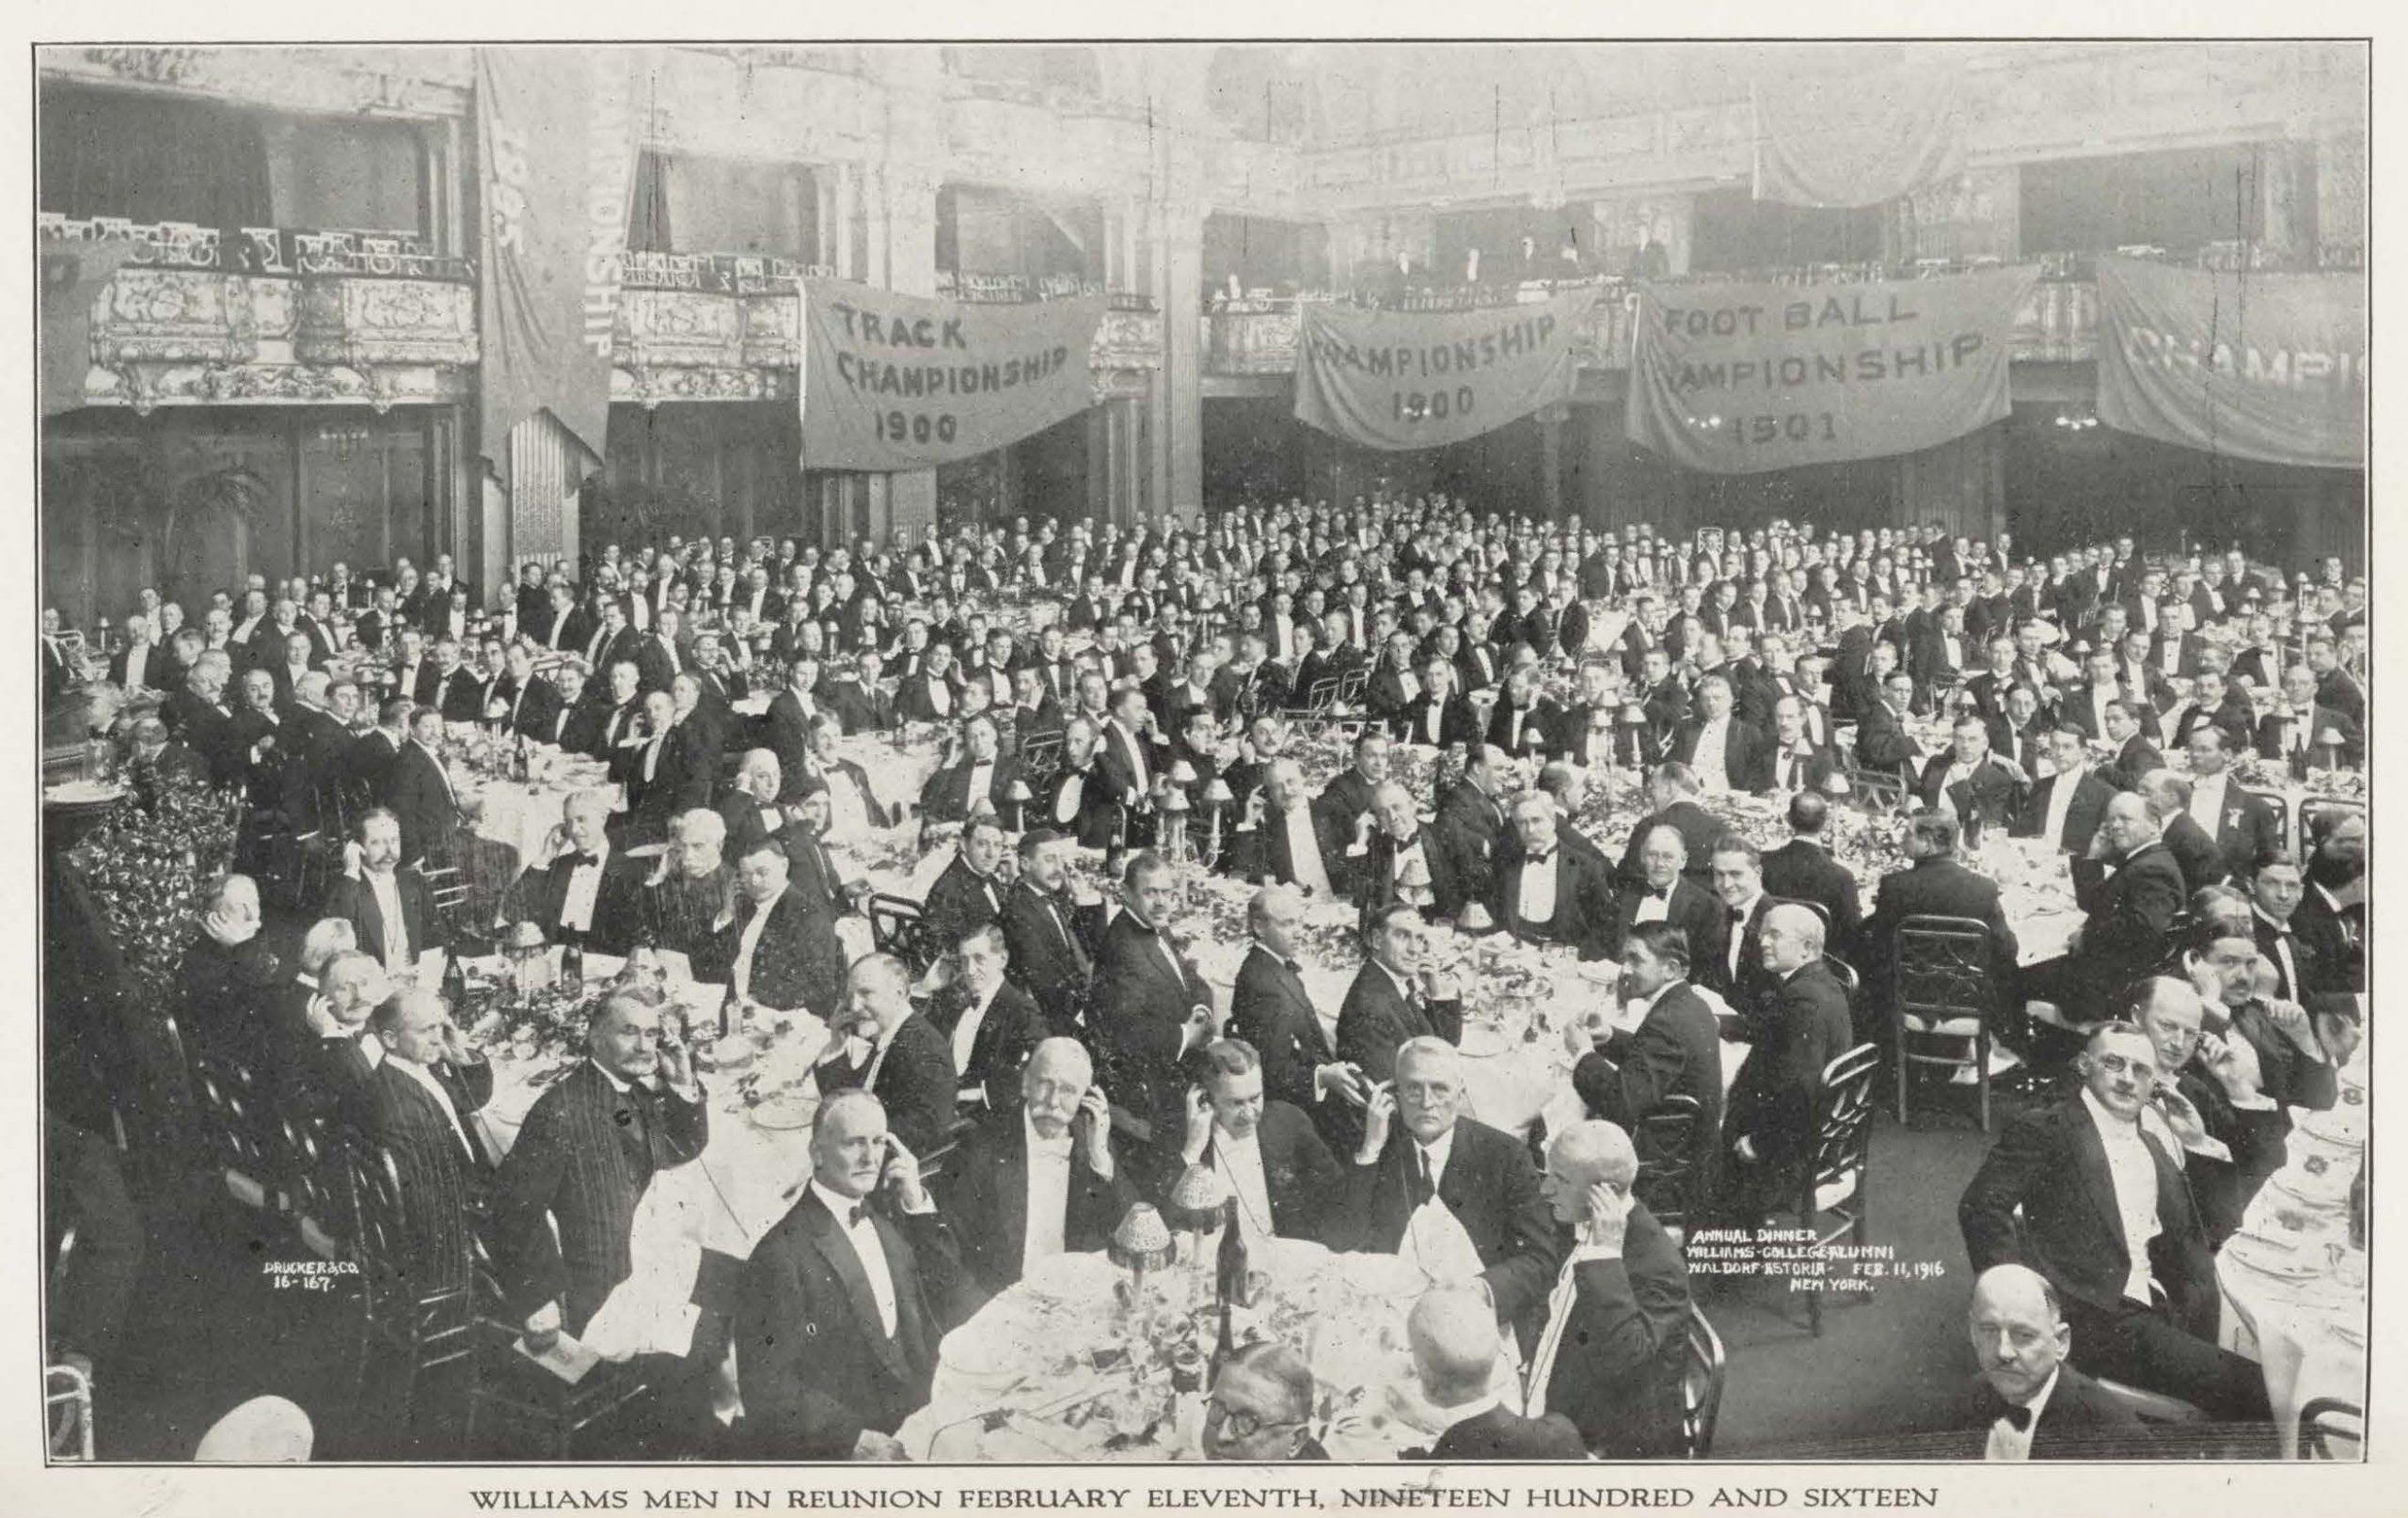 A black and white photo of Williams alumni at the 1916 New York City reunion dinner.